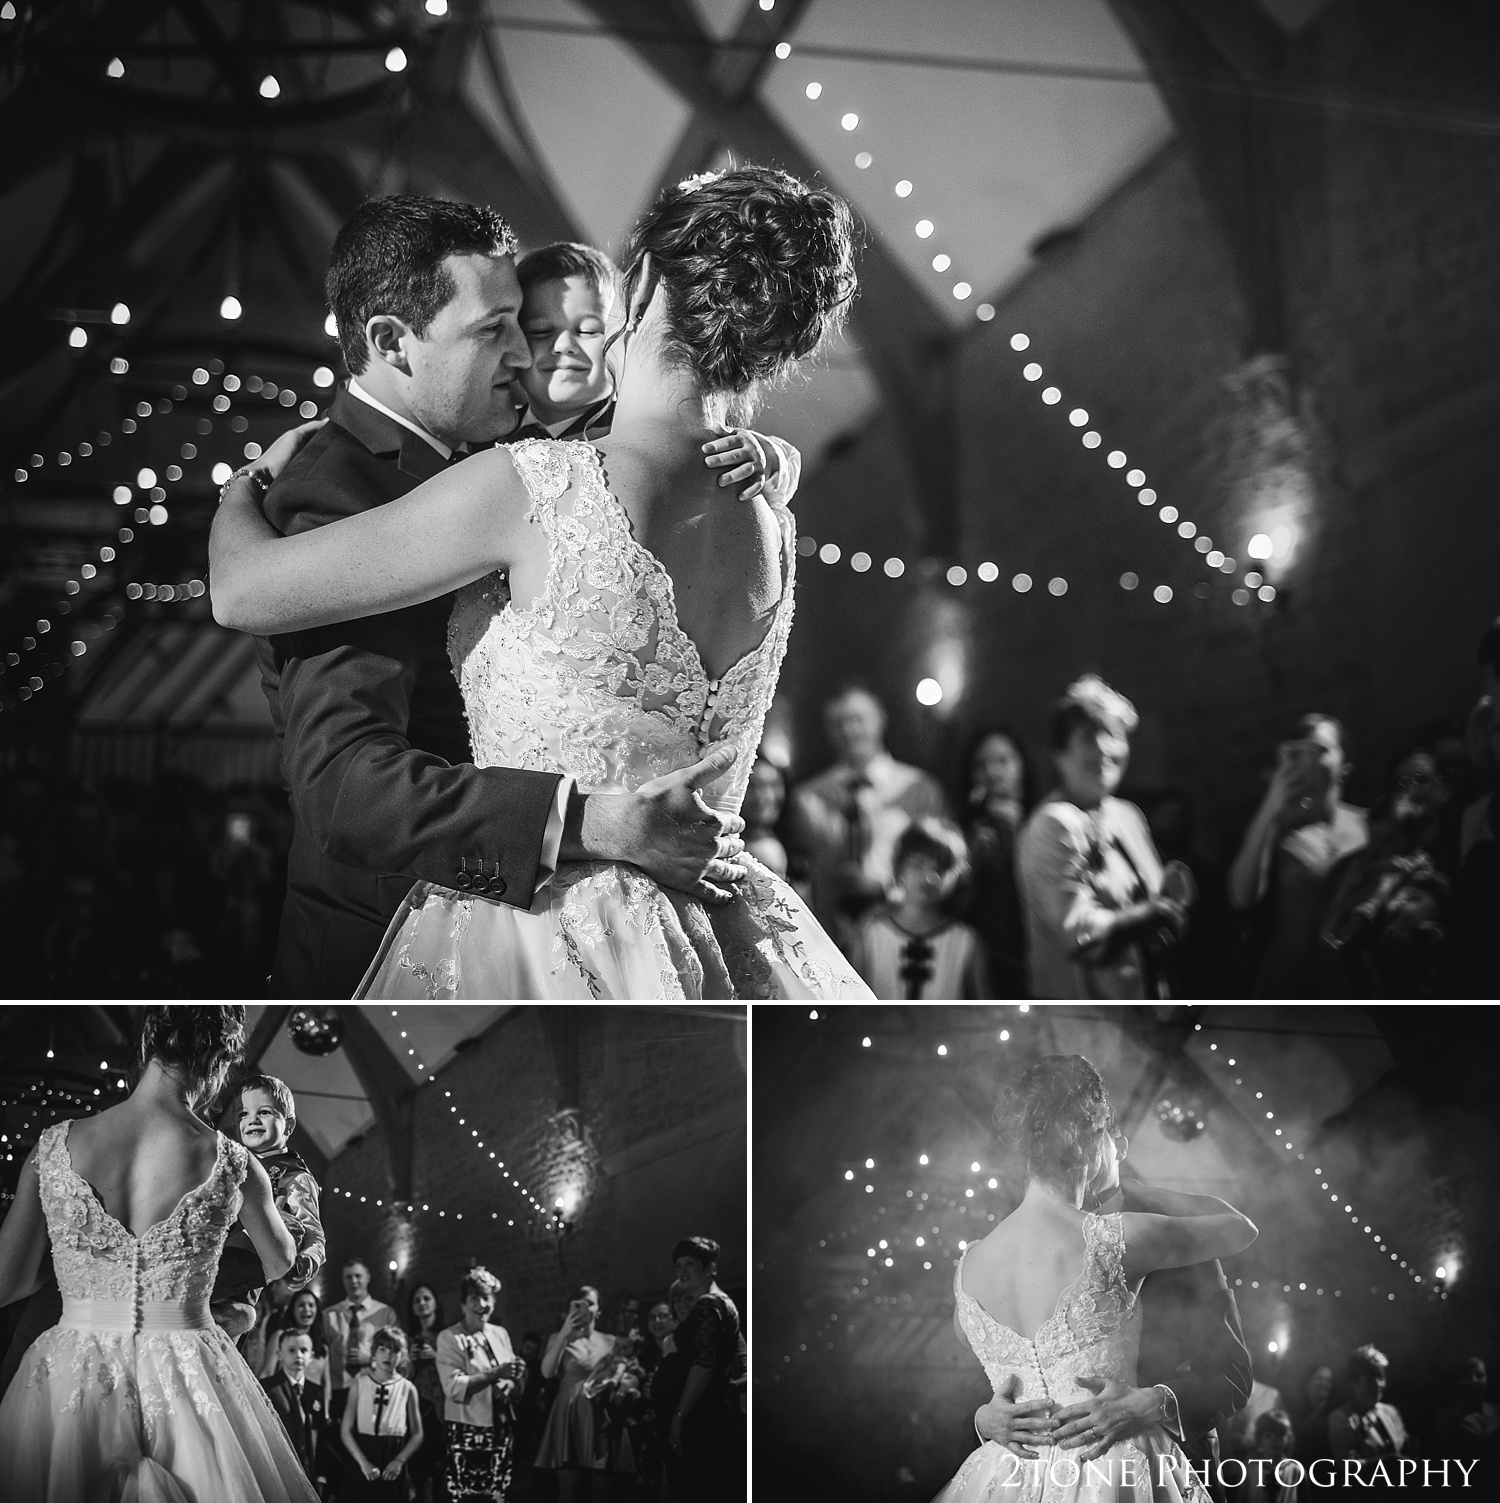 The bride and groom's first dance at Haselbury Mill and the Old Tythe Barn in Somerset by www.2tonephotography.co.uk